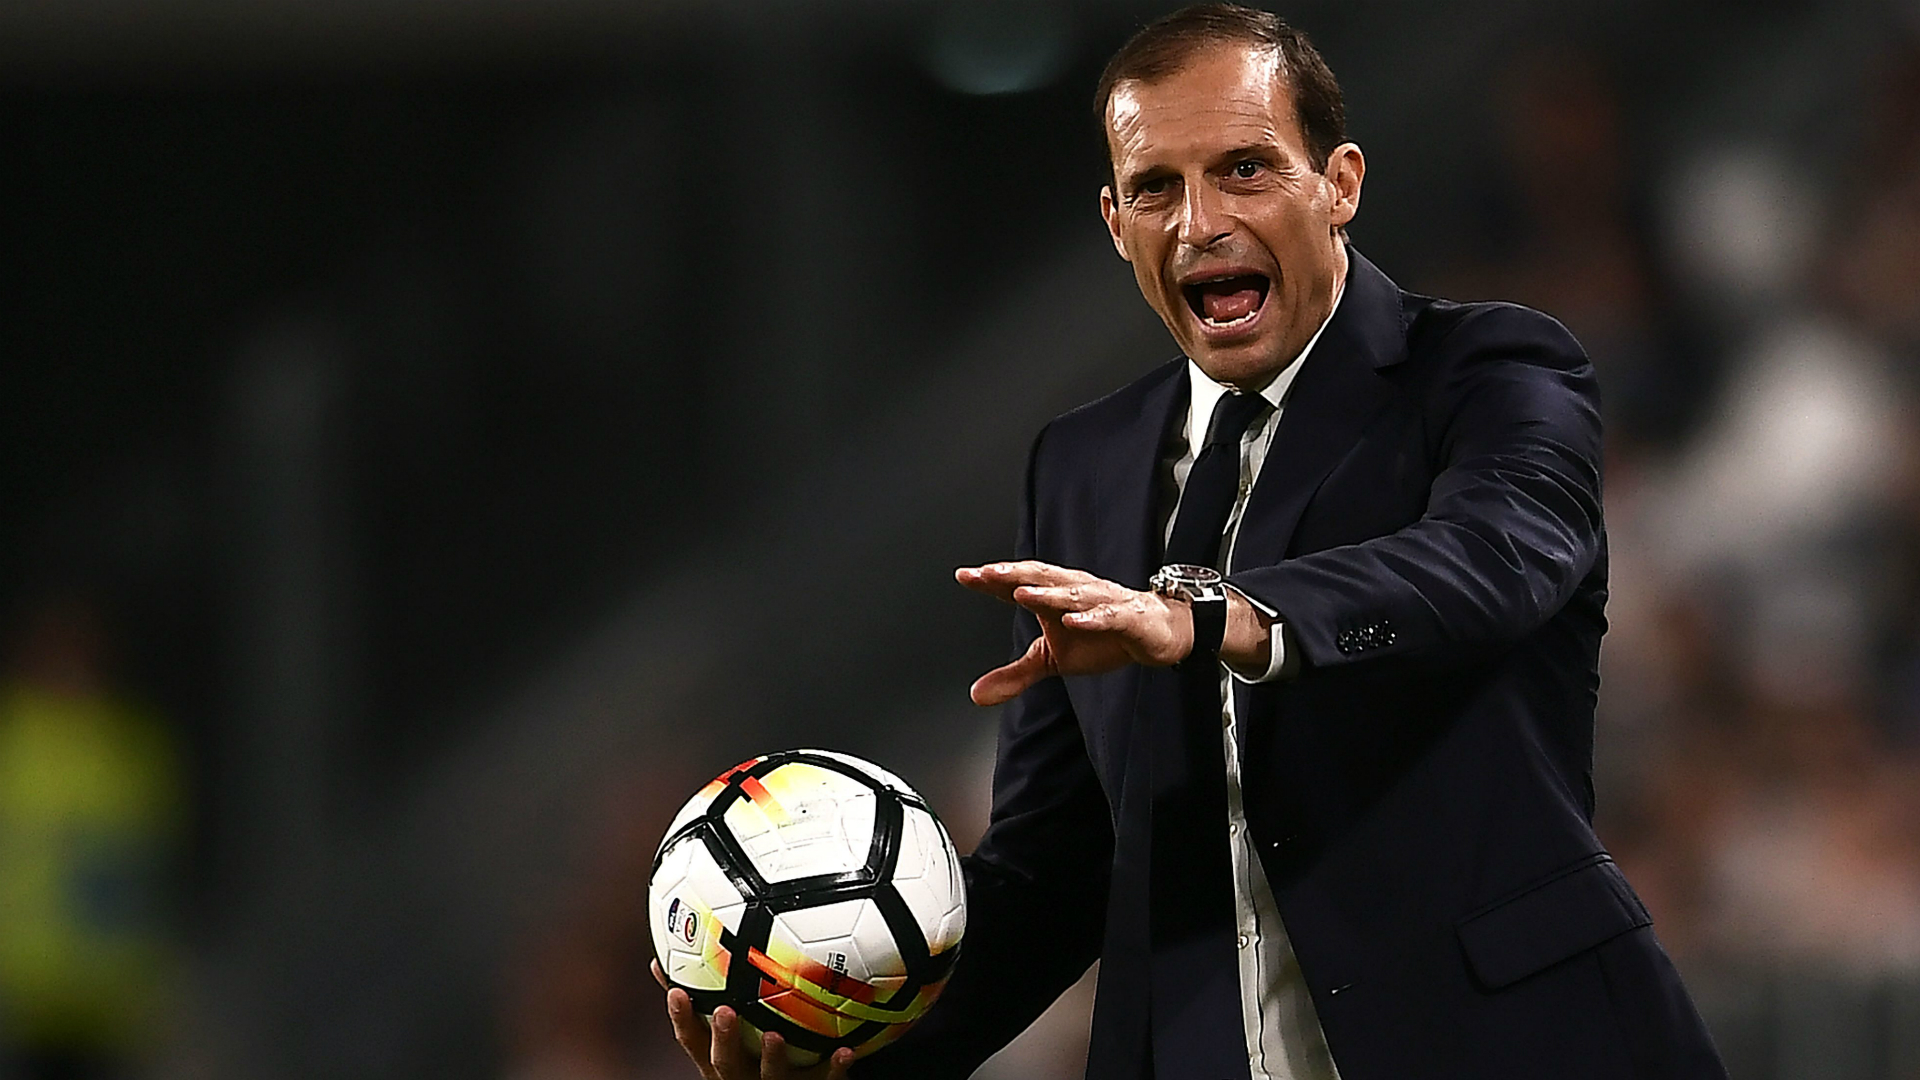 Massimiliano Allegri Juventus  coach